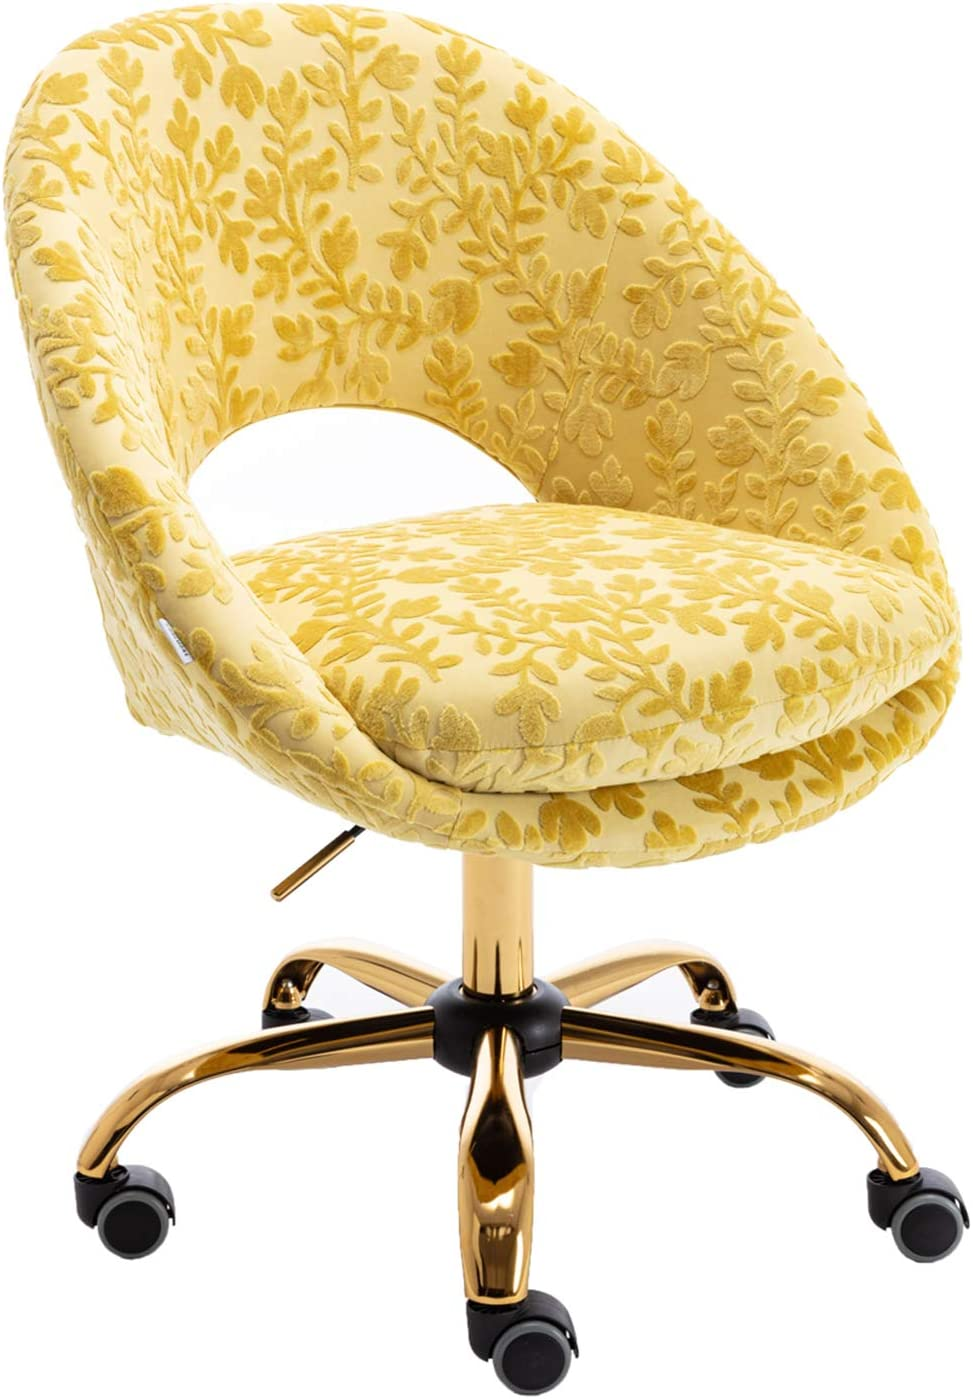 55% OFF Olela Stylish Desk Chair Industry No. 1 Modern Gold Task Upholstered with